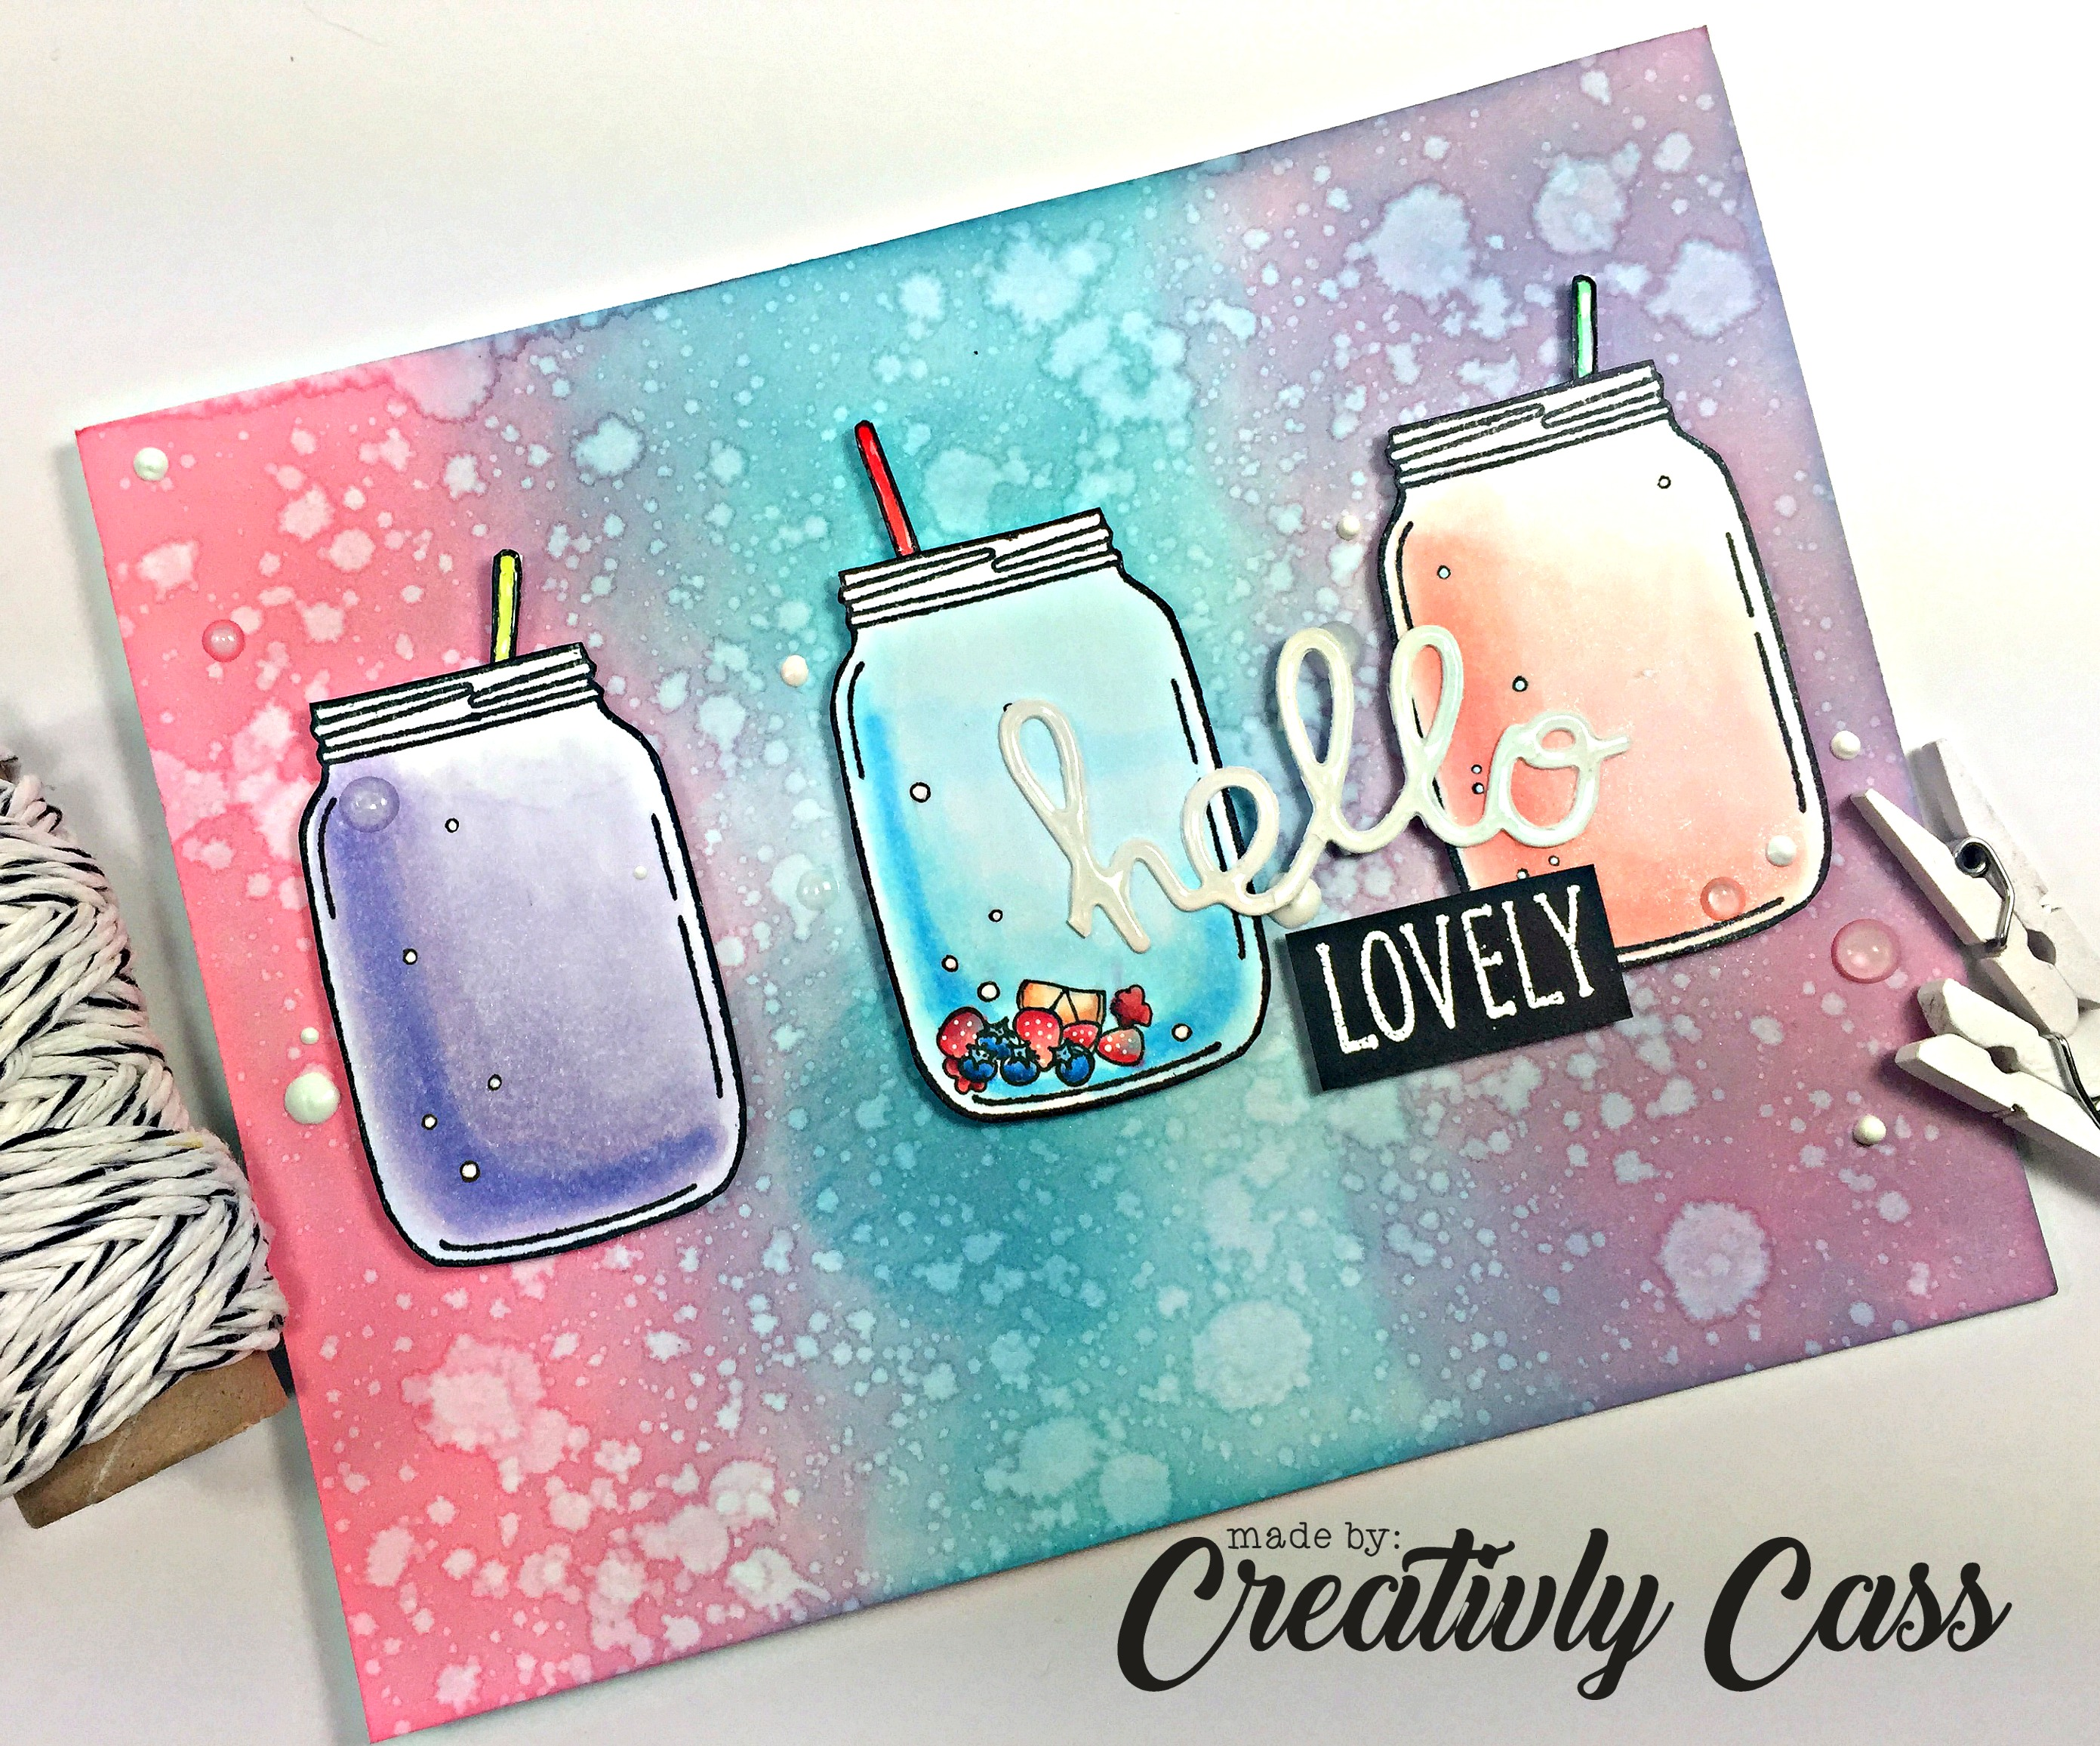 134Hello Lovely Card by May Guest Designer Cassie Tezak | Lovely Blooms Stamp set by Newton's Nook Designs #newtonsnook